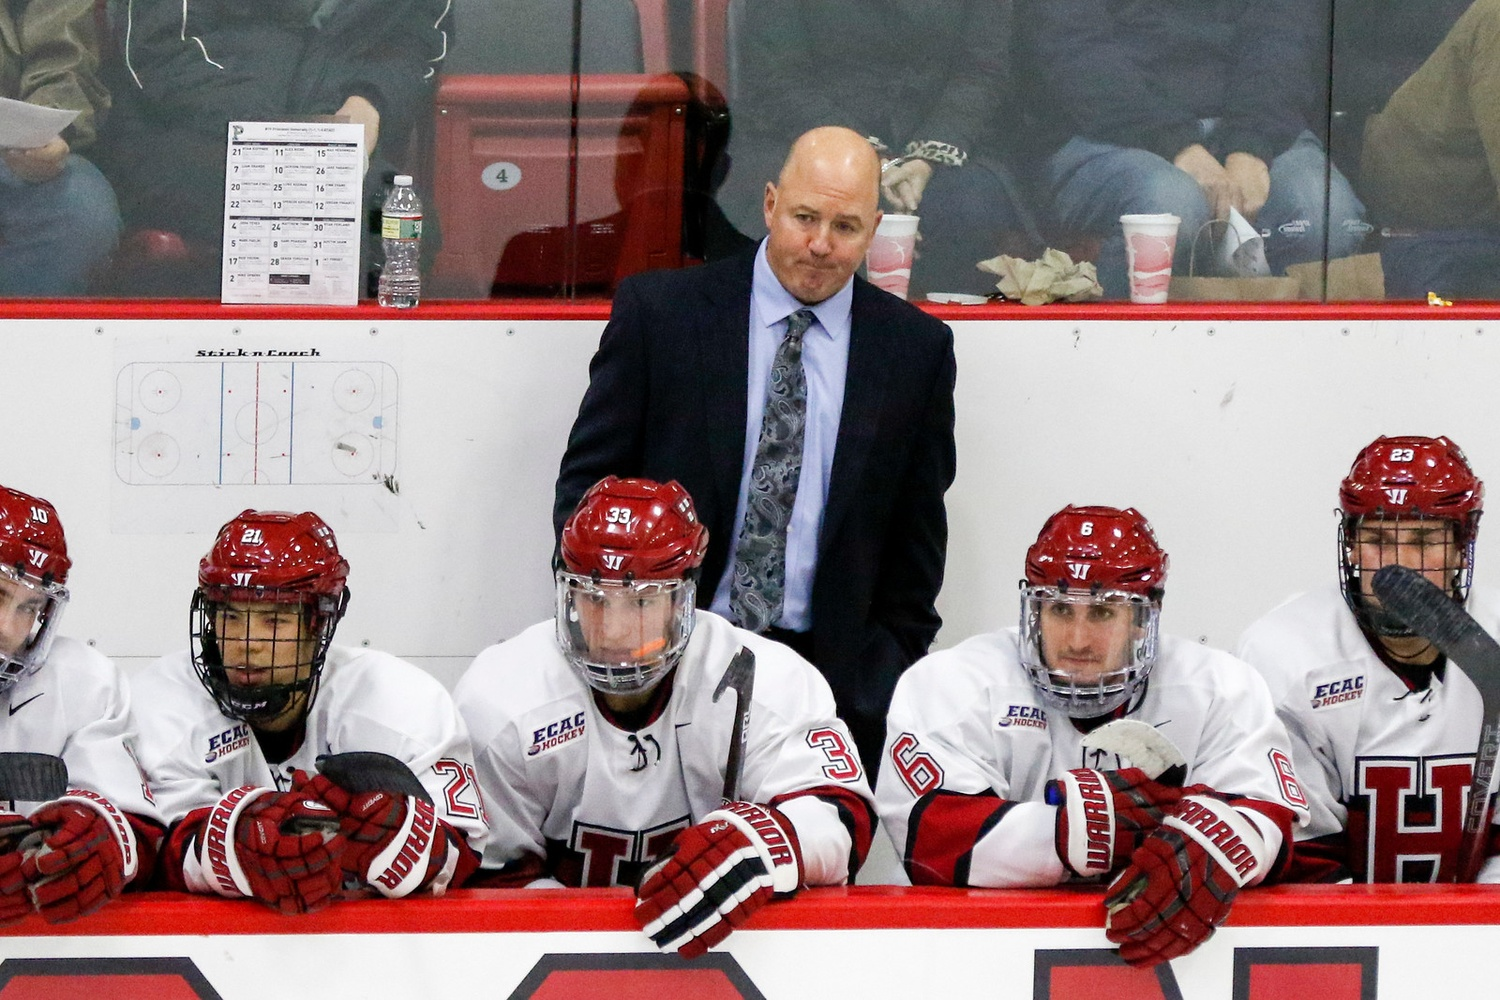 For the Harvard icemen, learning how to avoid beating themselves is as crucial as figuring out the other team. This trope has persisted since early last season.